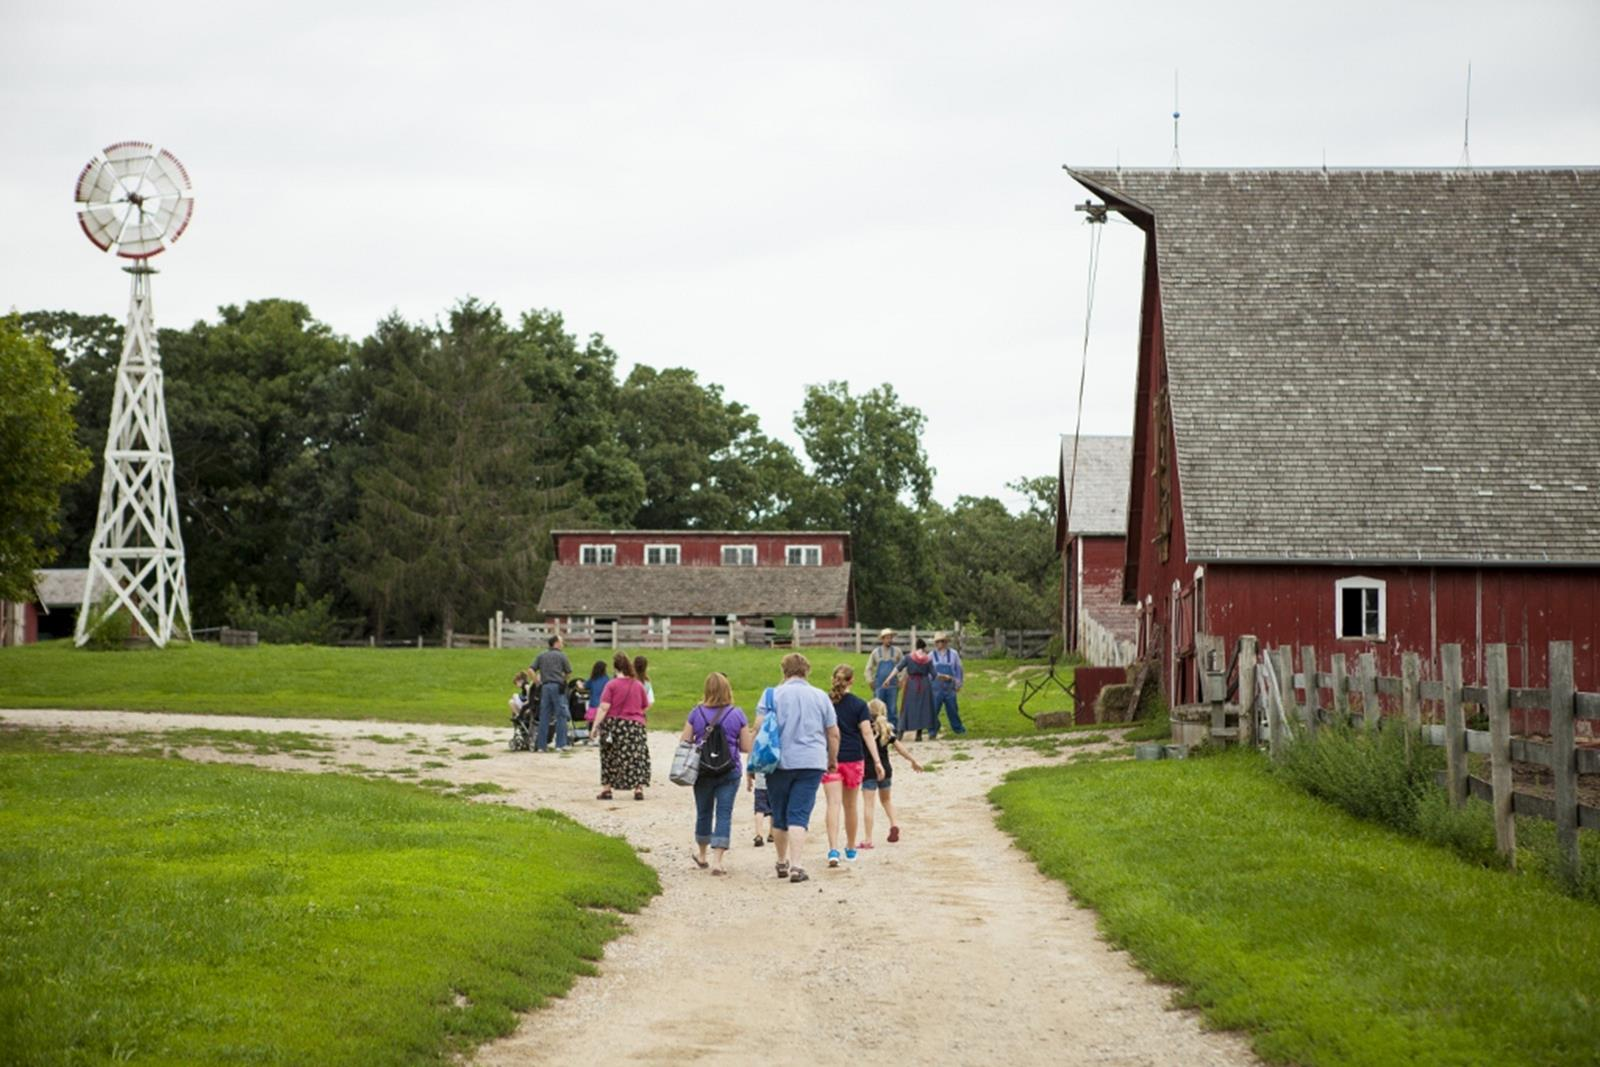 Walking around the farm. Credit: Living History Farm